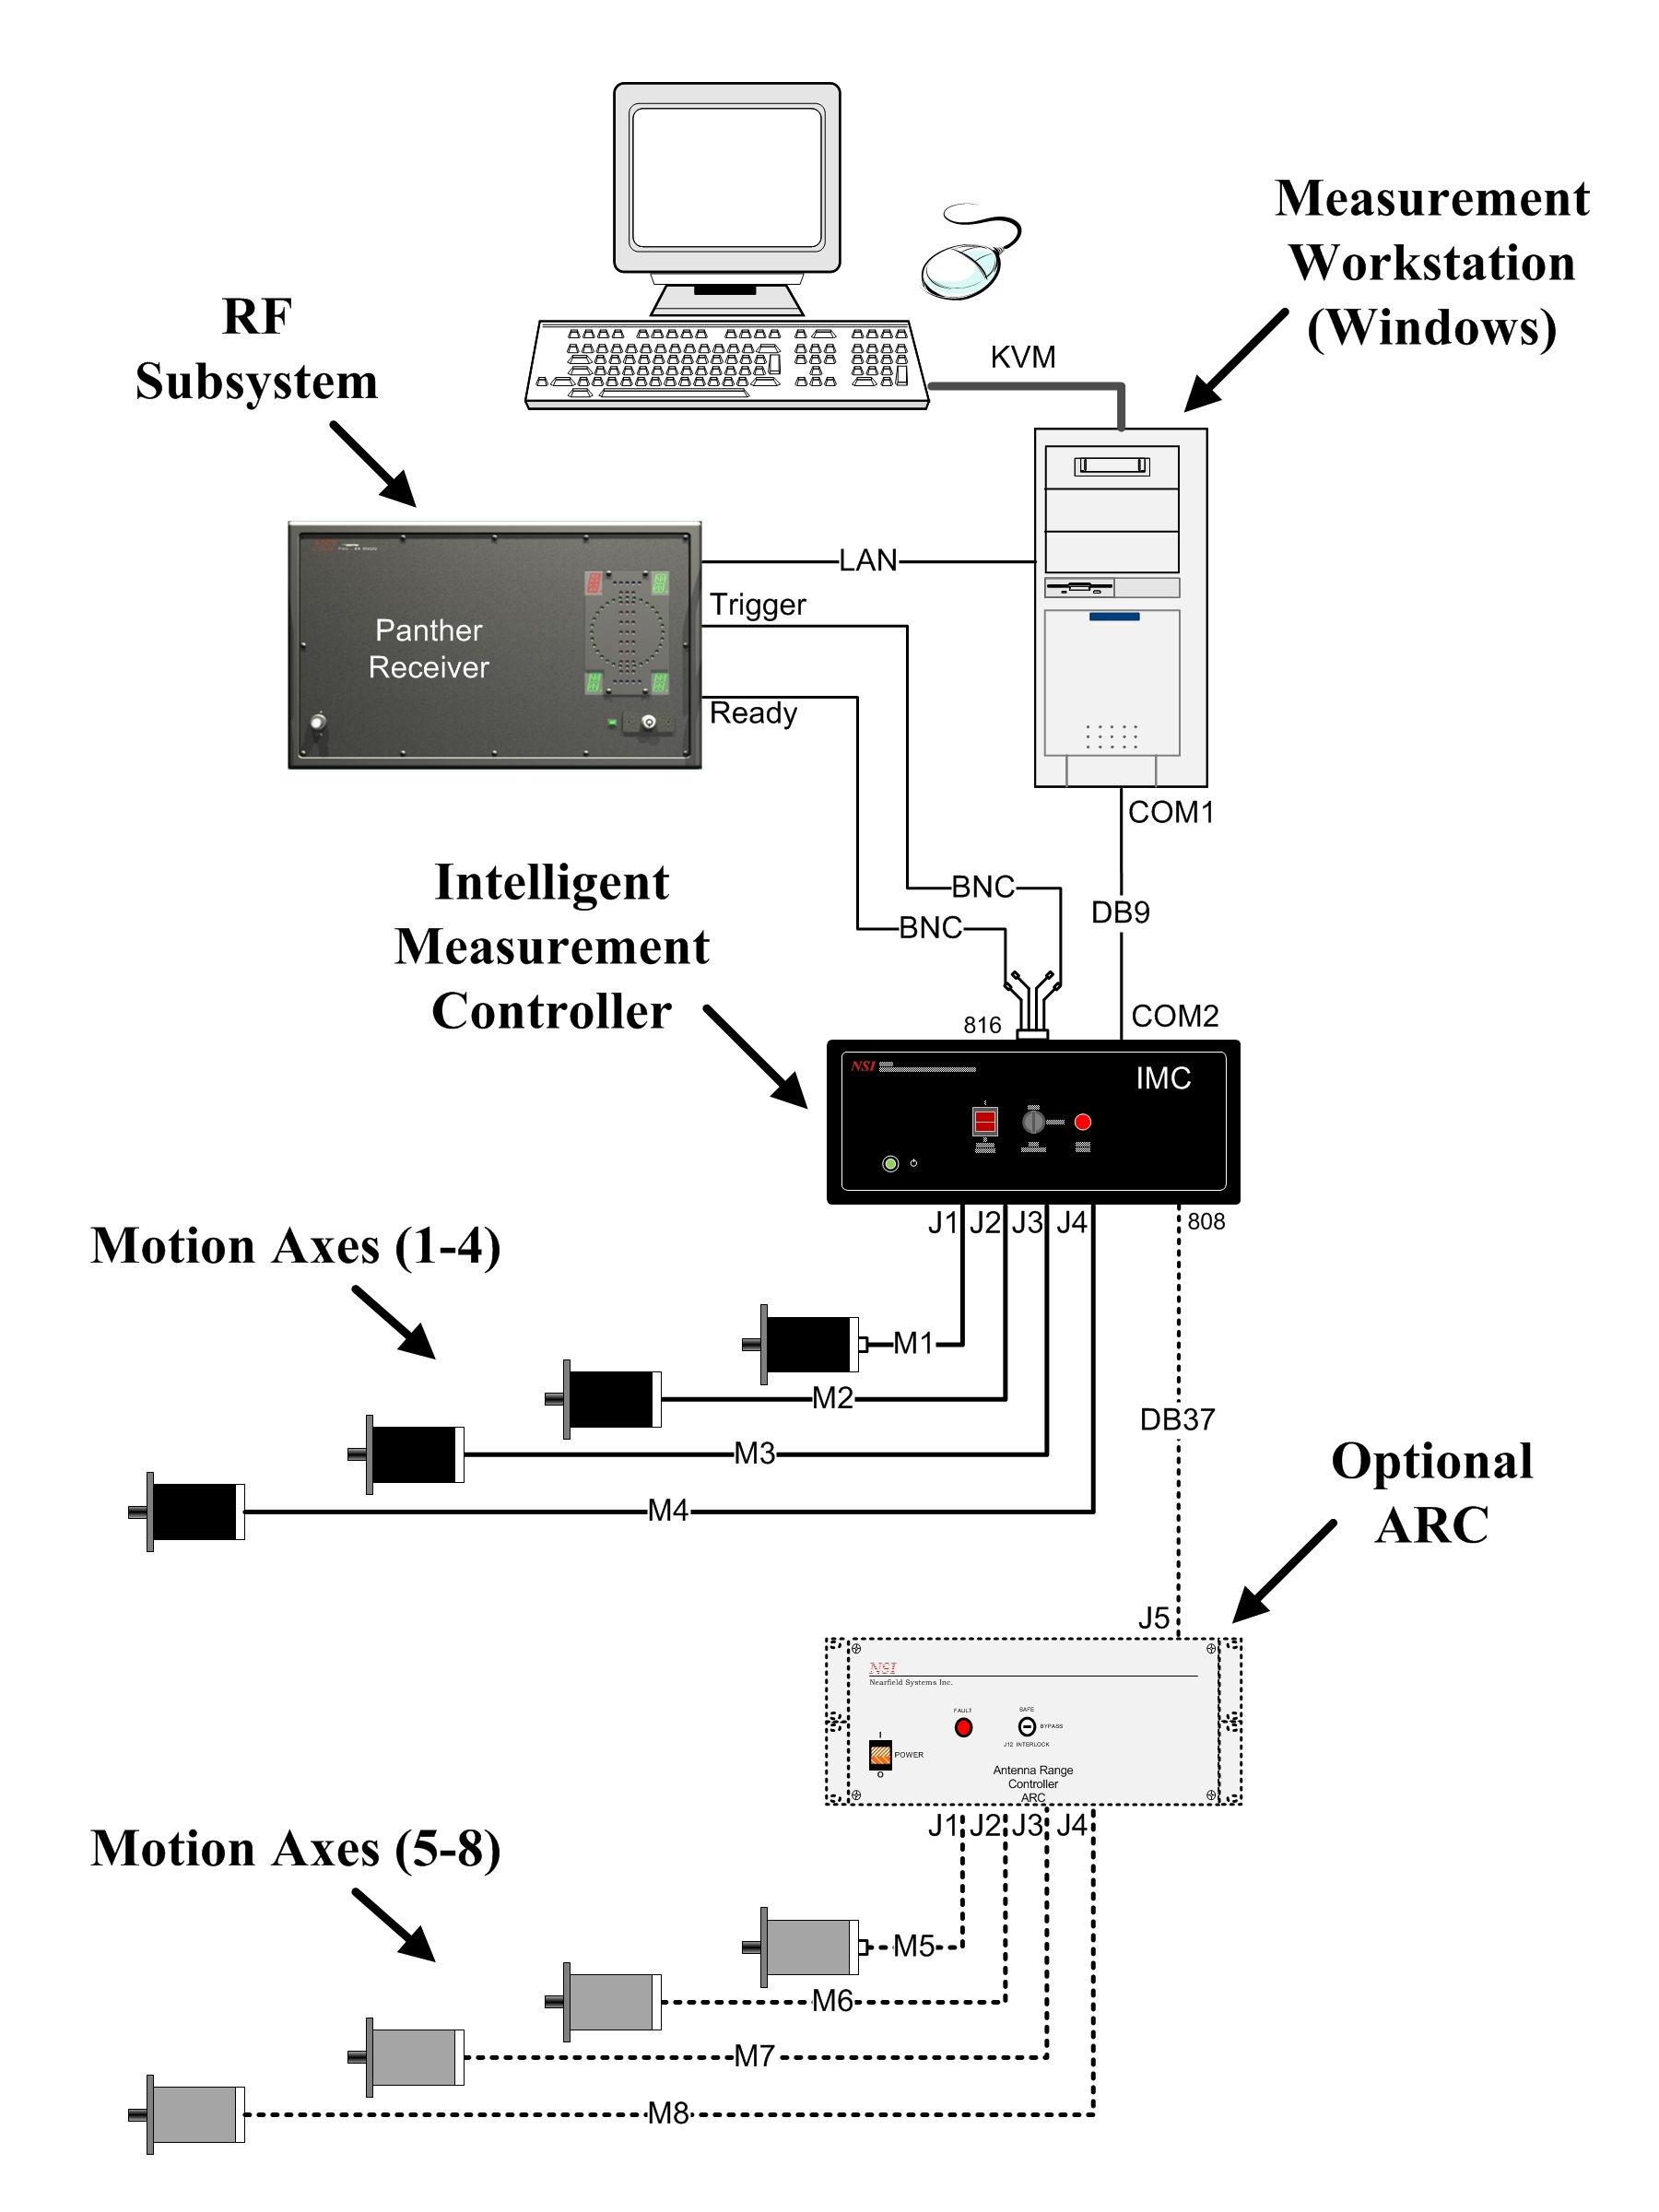 Intelligent Measurement Controller